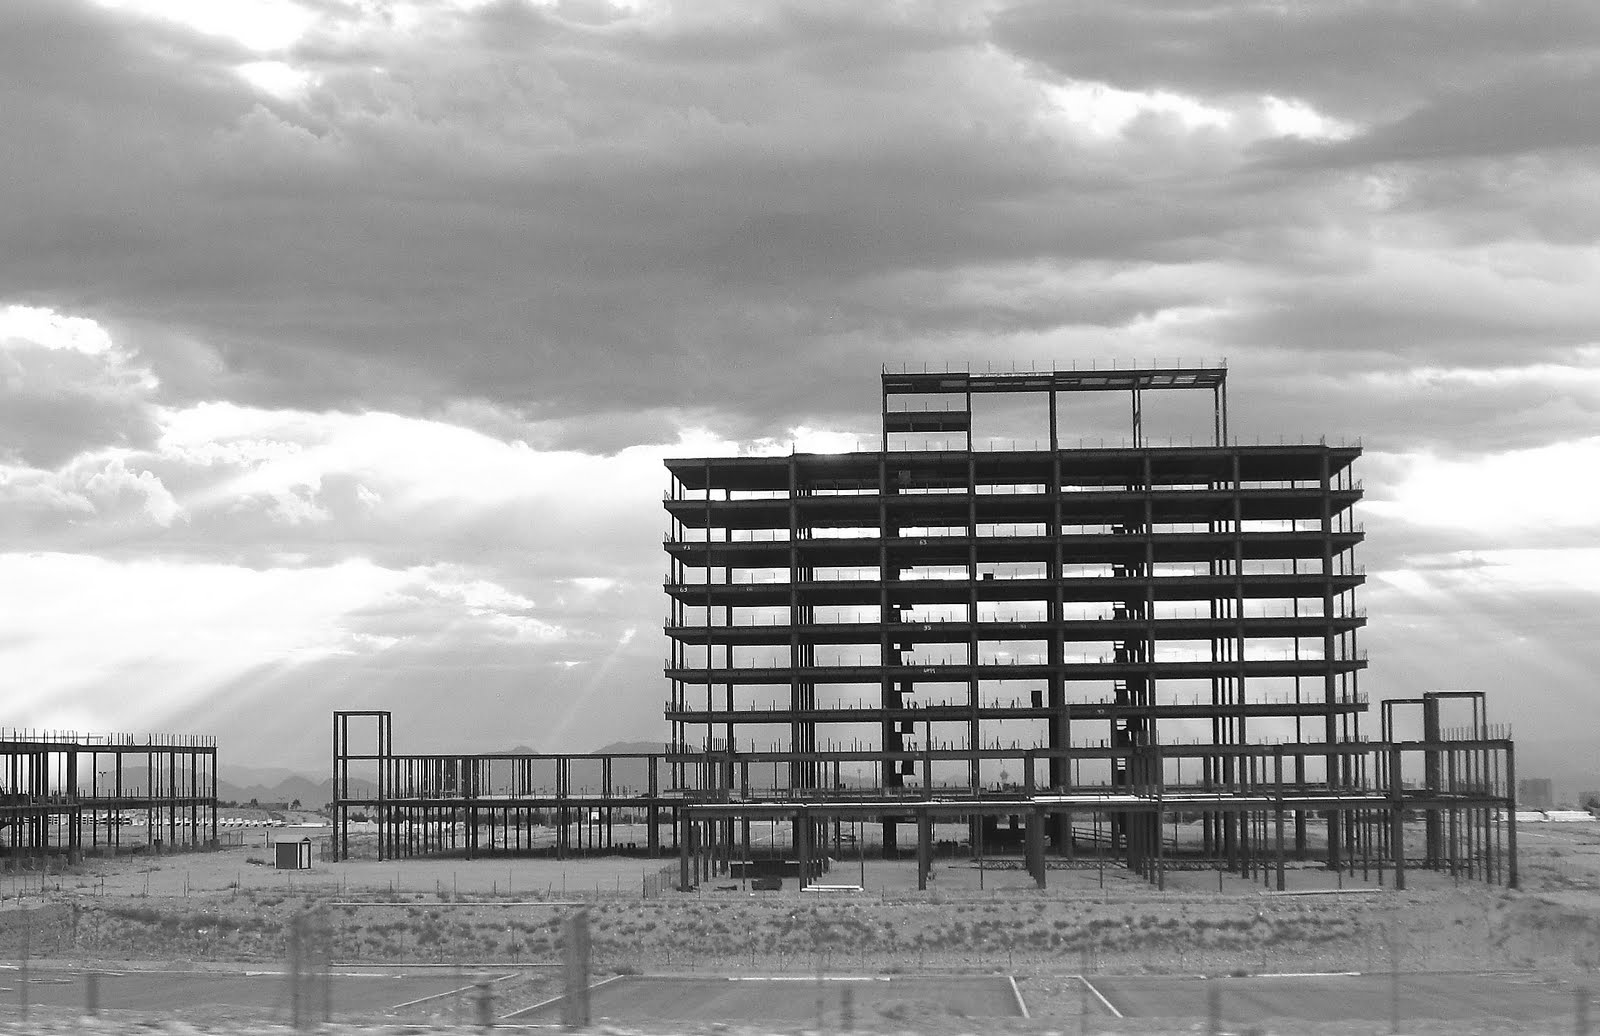 Abandoned construction project